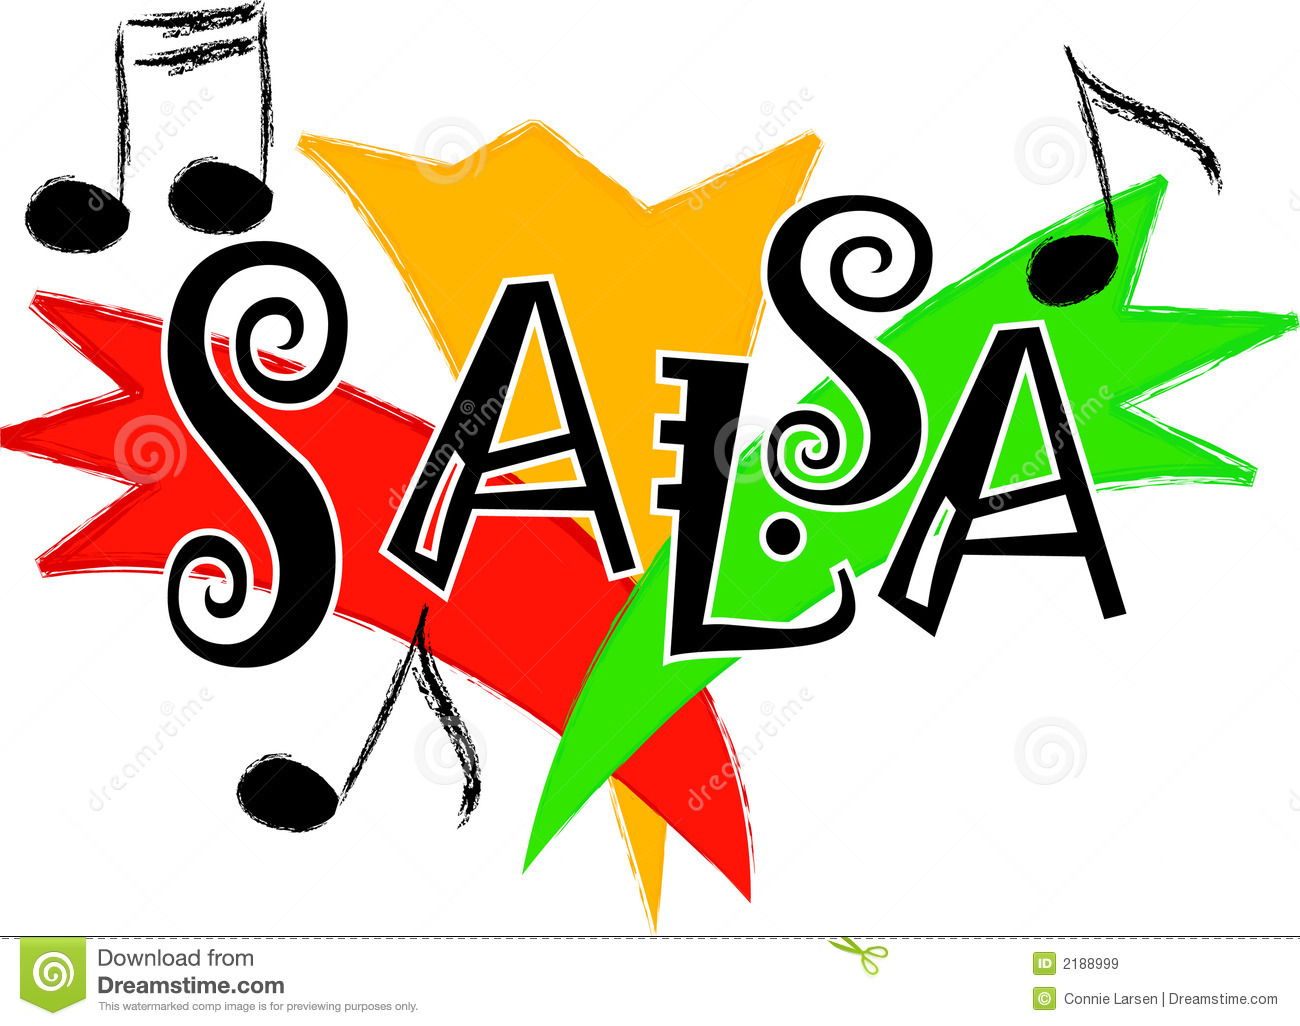 Salsa music/eps stock vector. Image of clip, title, note ...